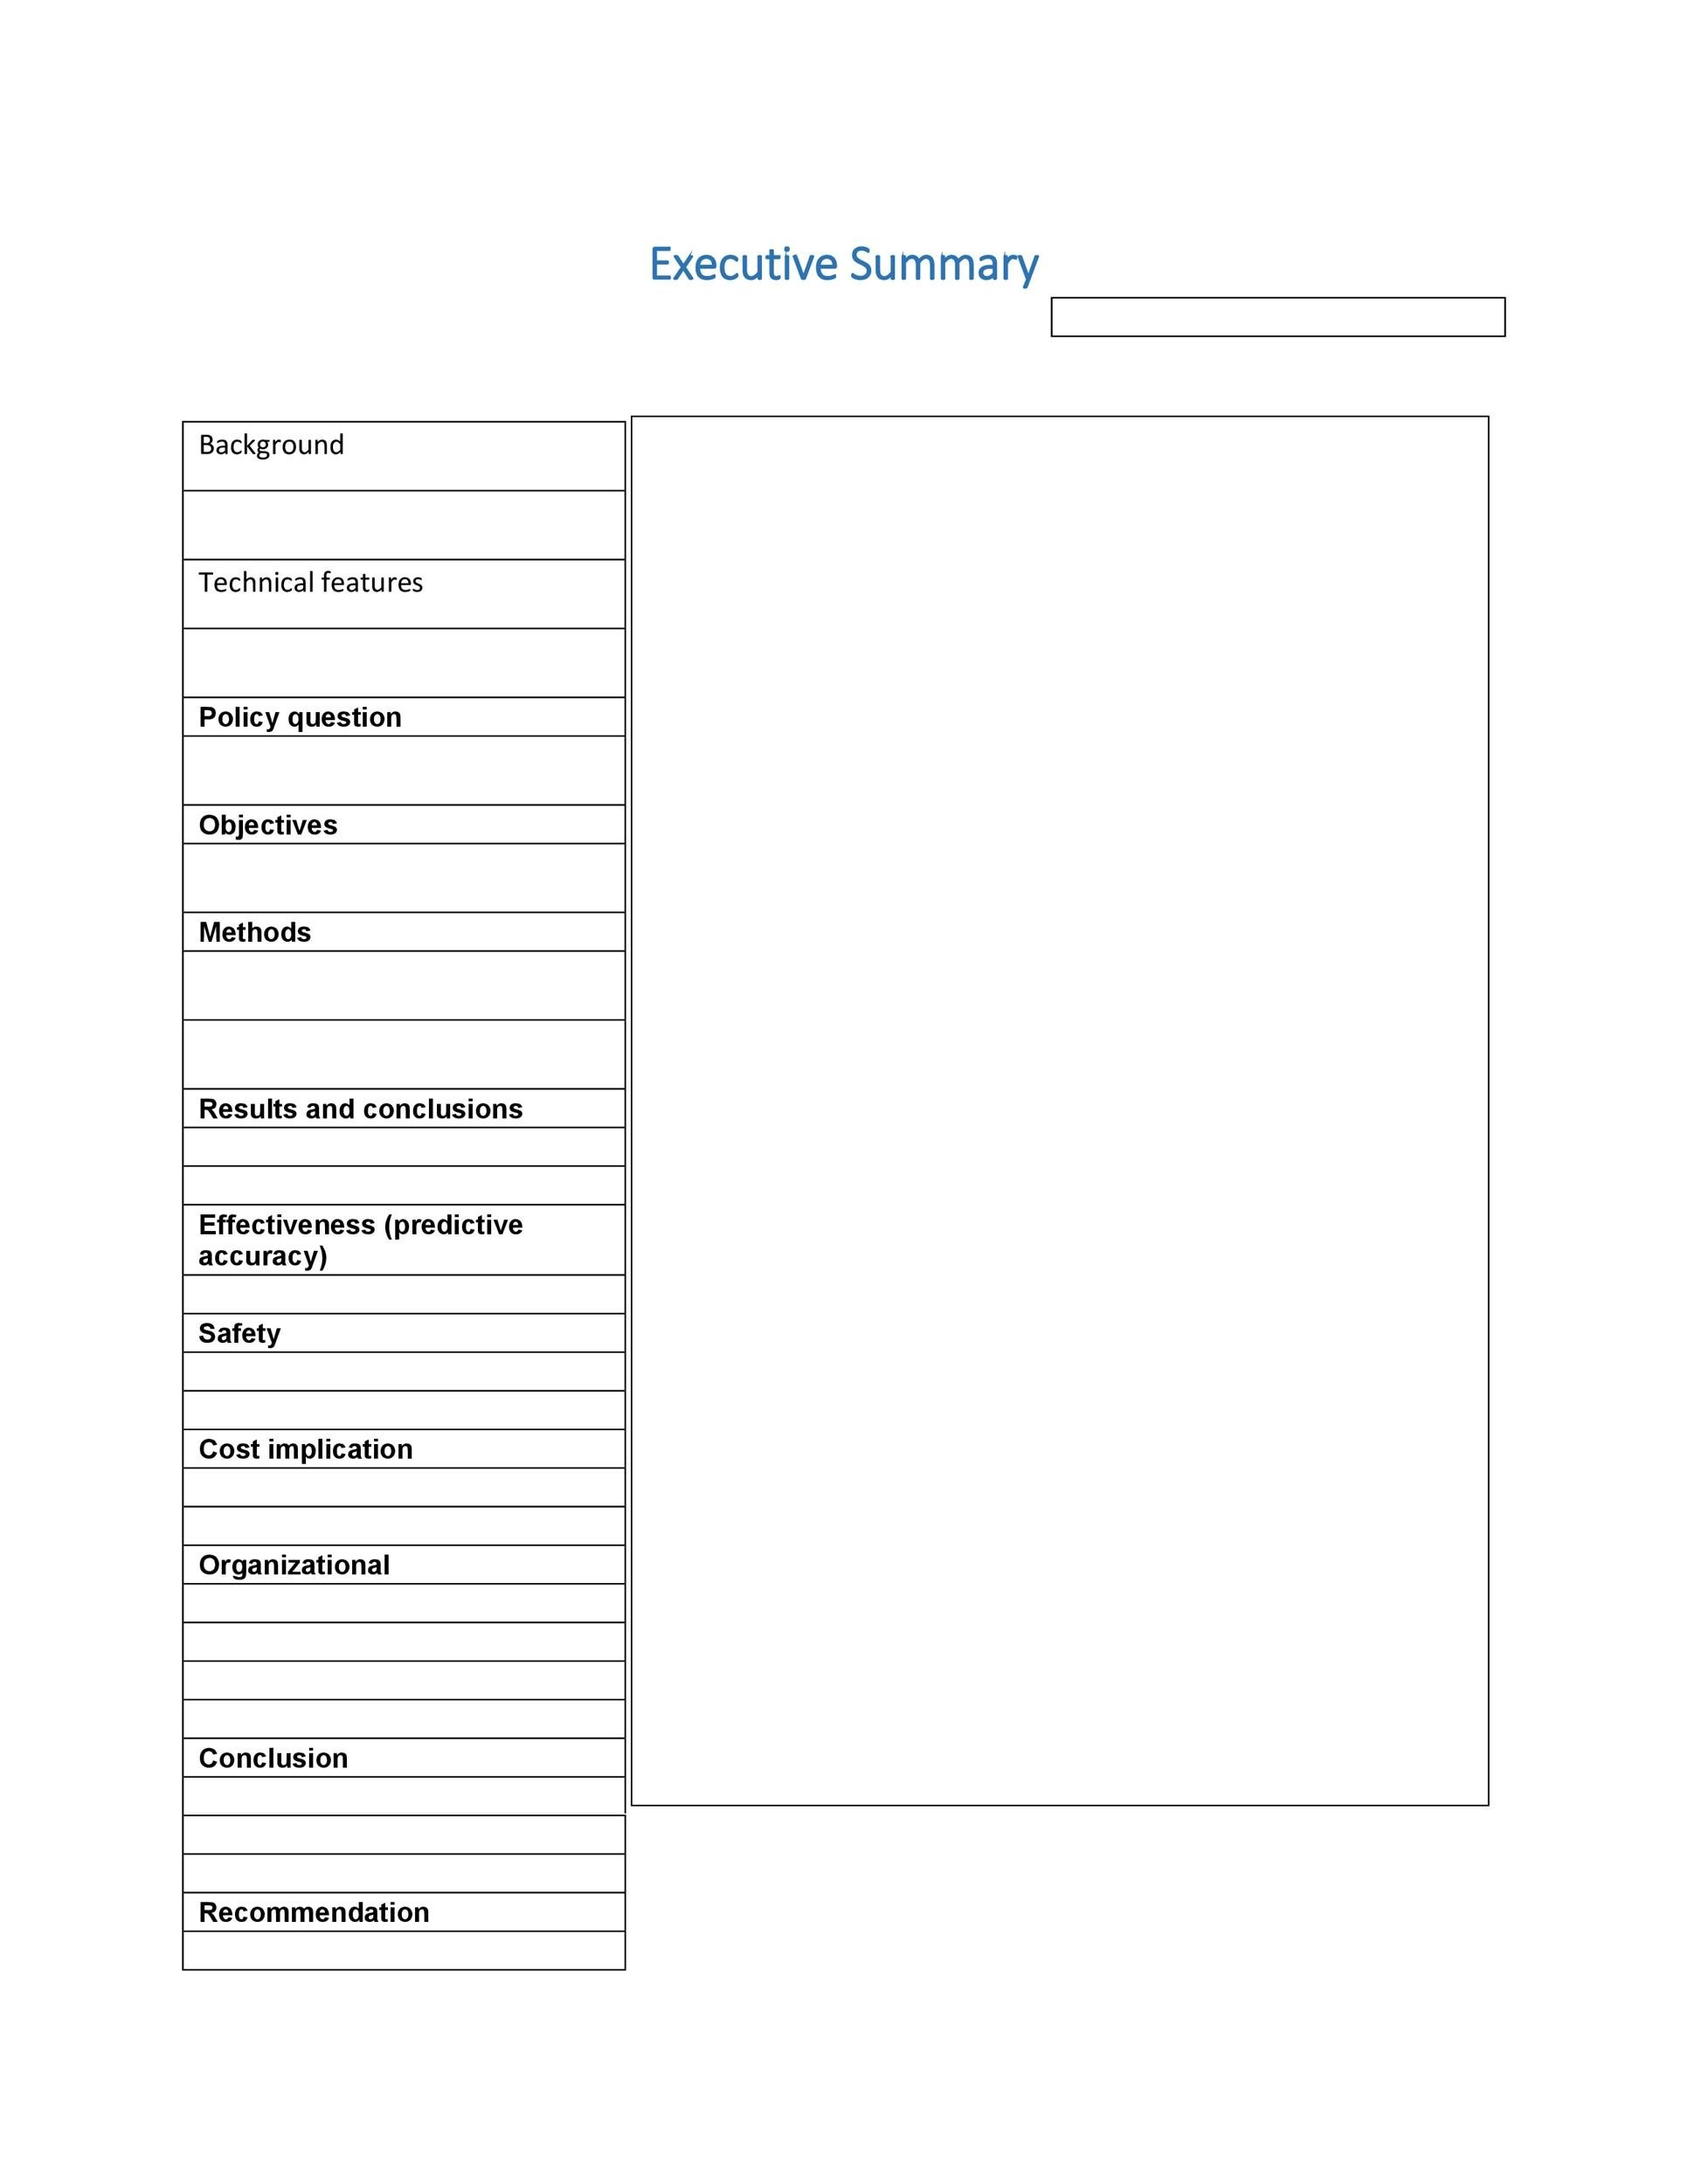 Free Executive Summary Template 20